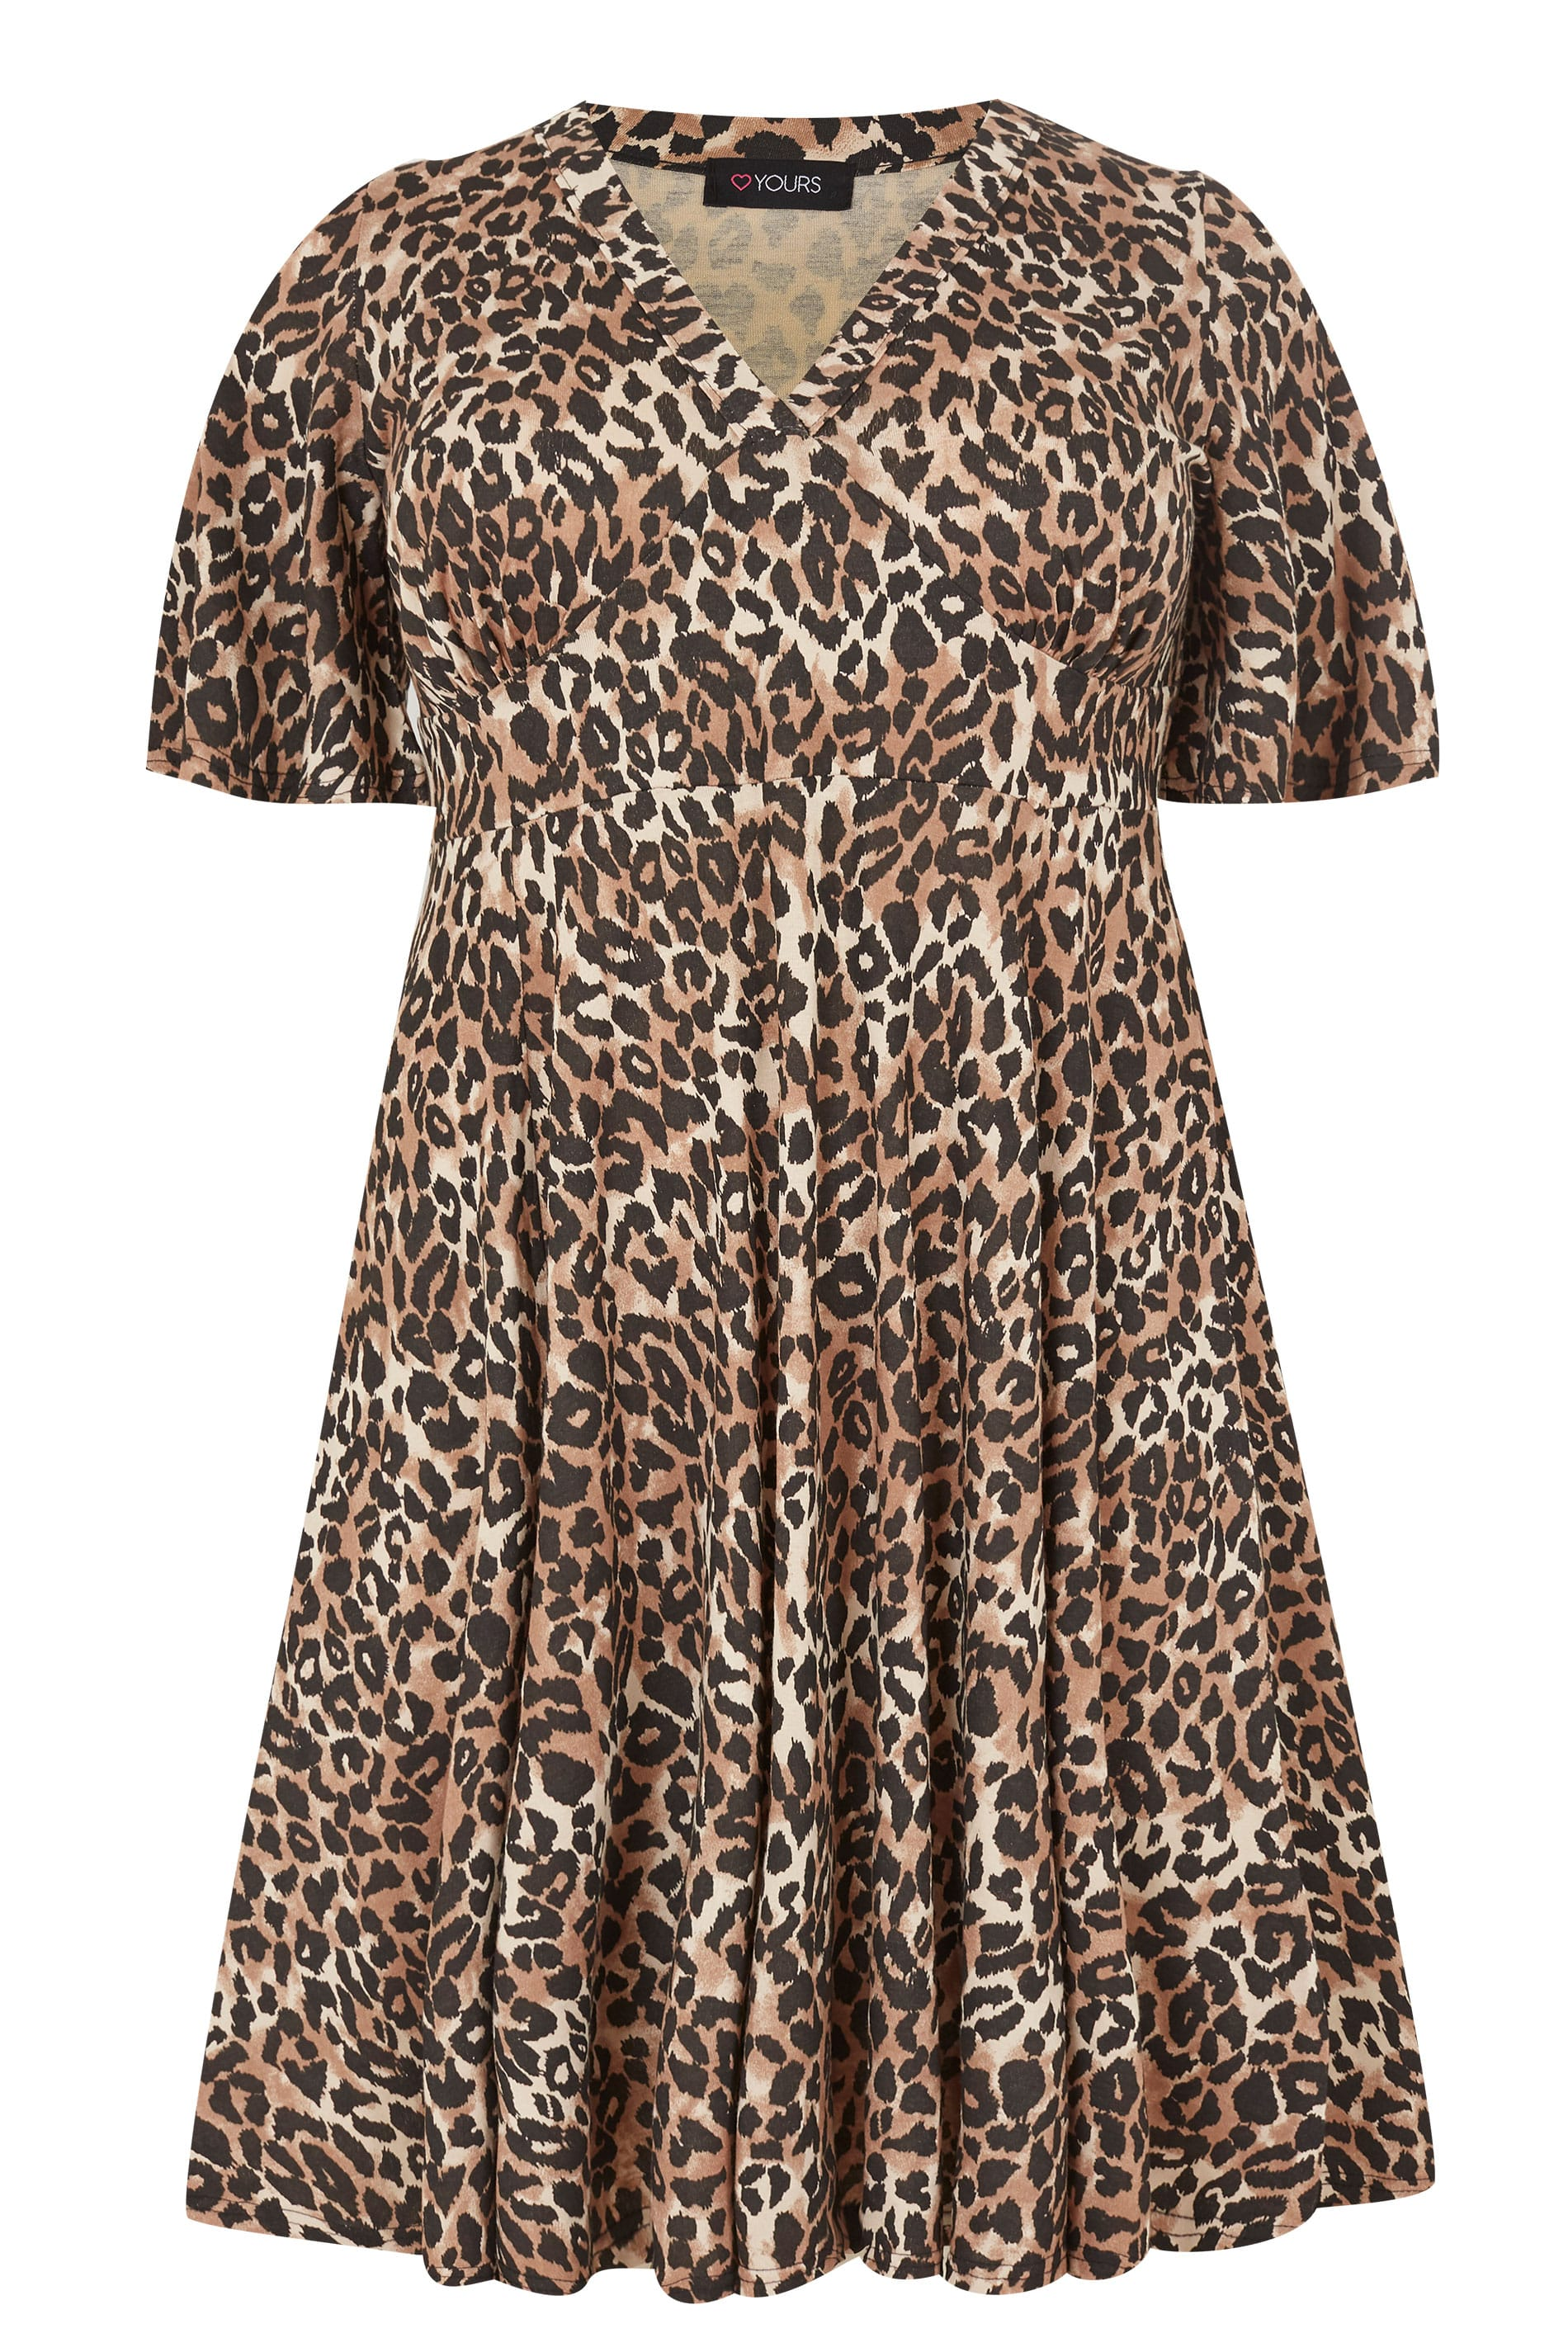 36401efe07 Brown Leopard Print Fit   Flare Dress